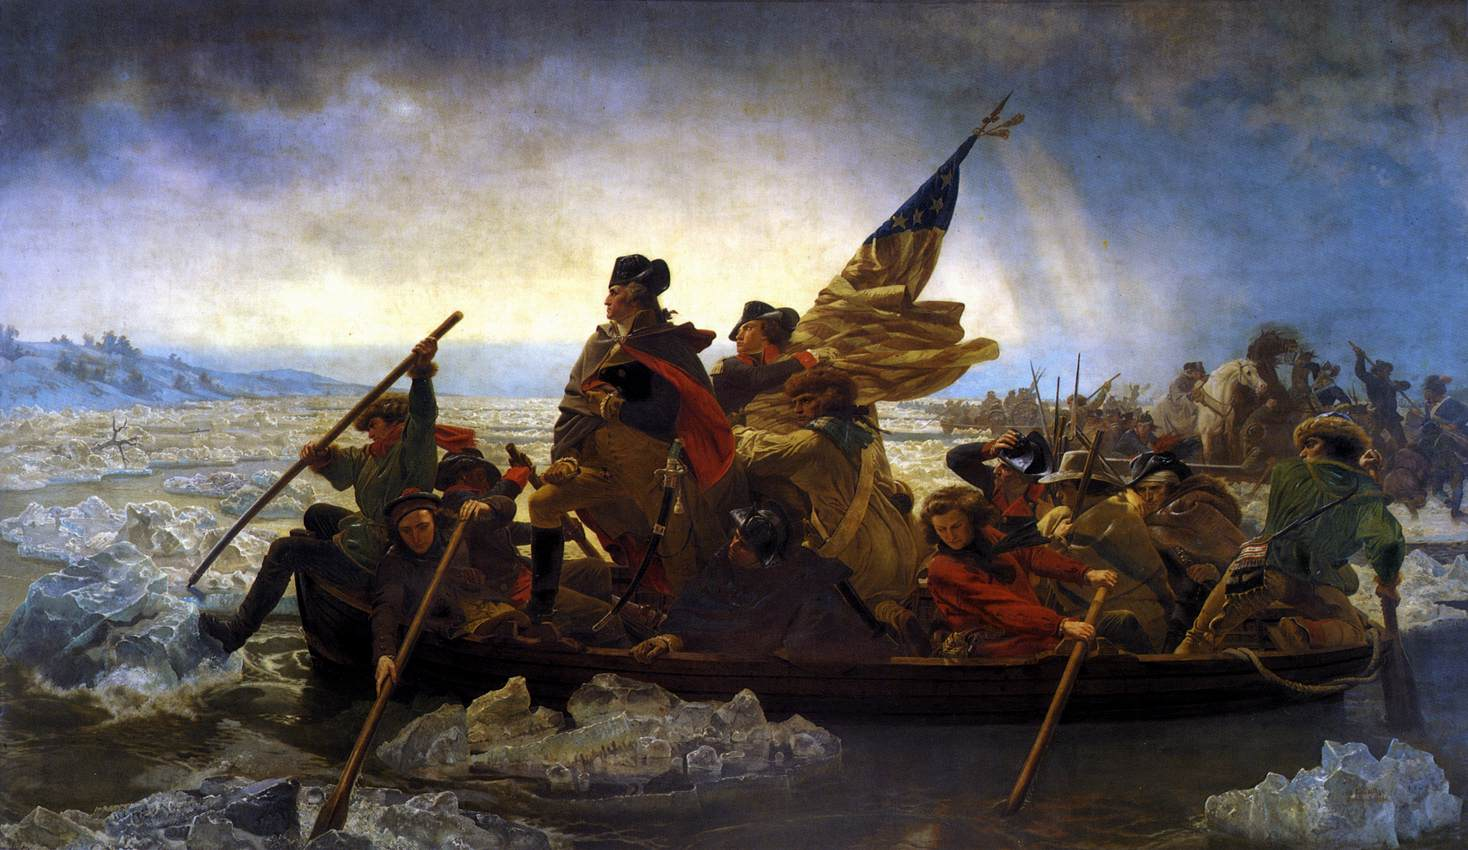 Nicolas-Bernard Lepicier, Washington Crossing the Delaware 1851